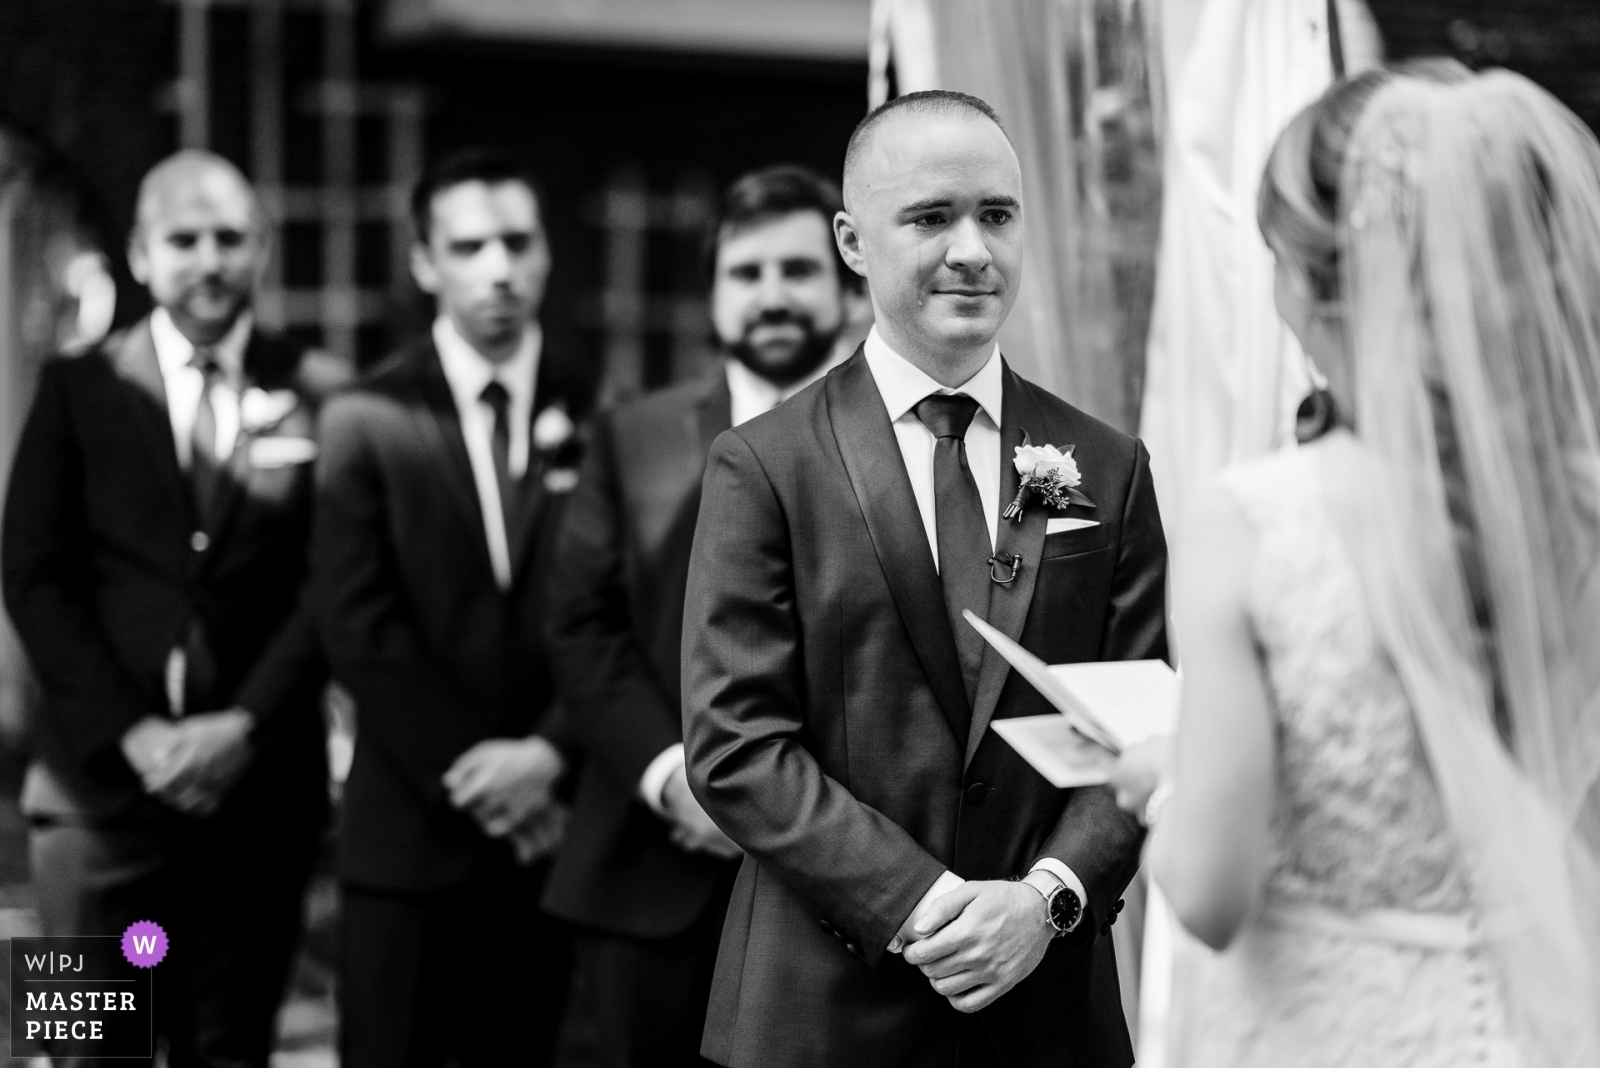 Groom shedding a tear while the bride reads her vows and the Groomsmen look on. - New Jersey, United States Wedding Photography -  | Ceremony Location